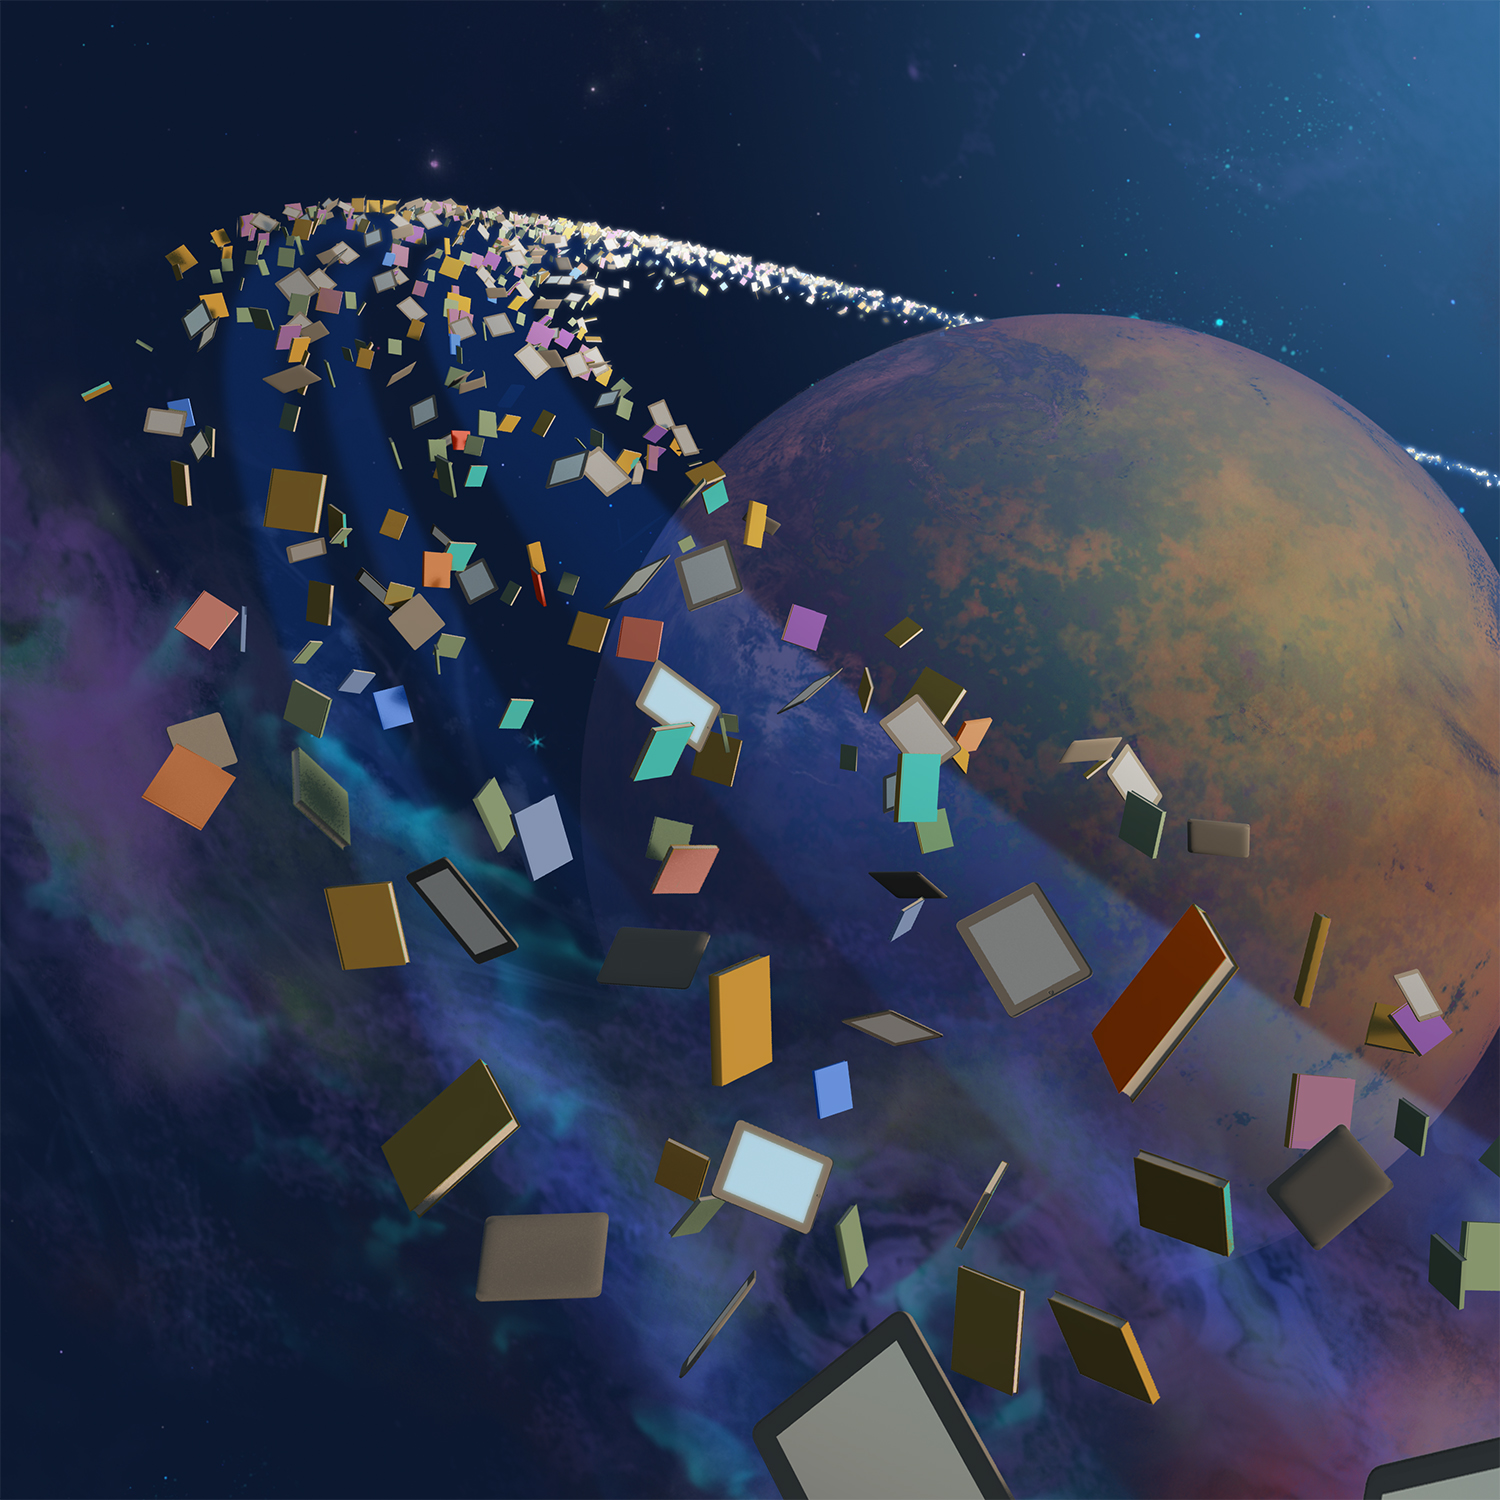 planet with rings of books and tablets